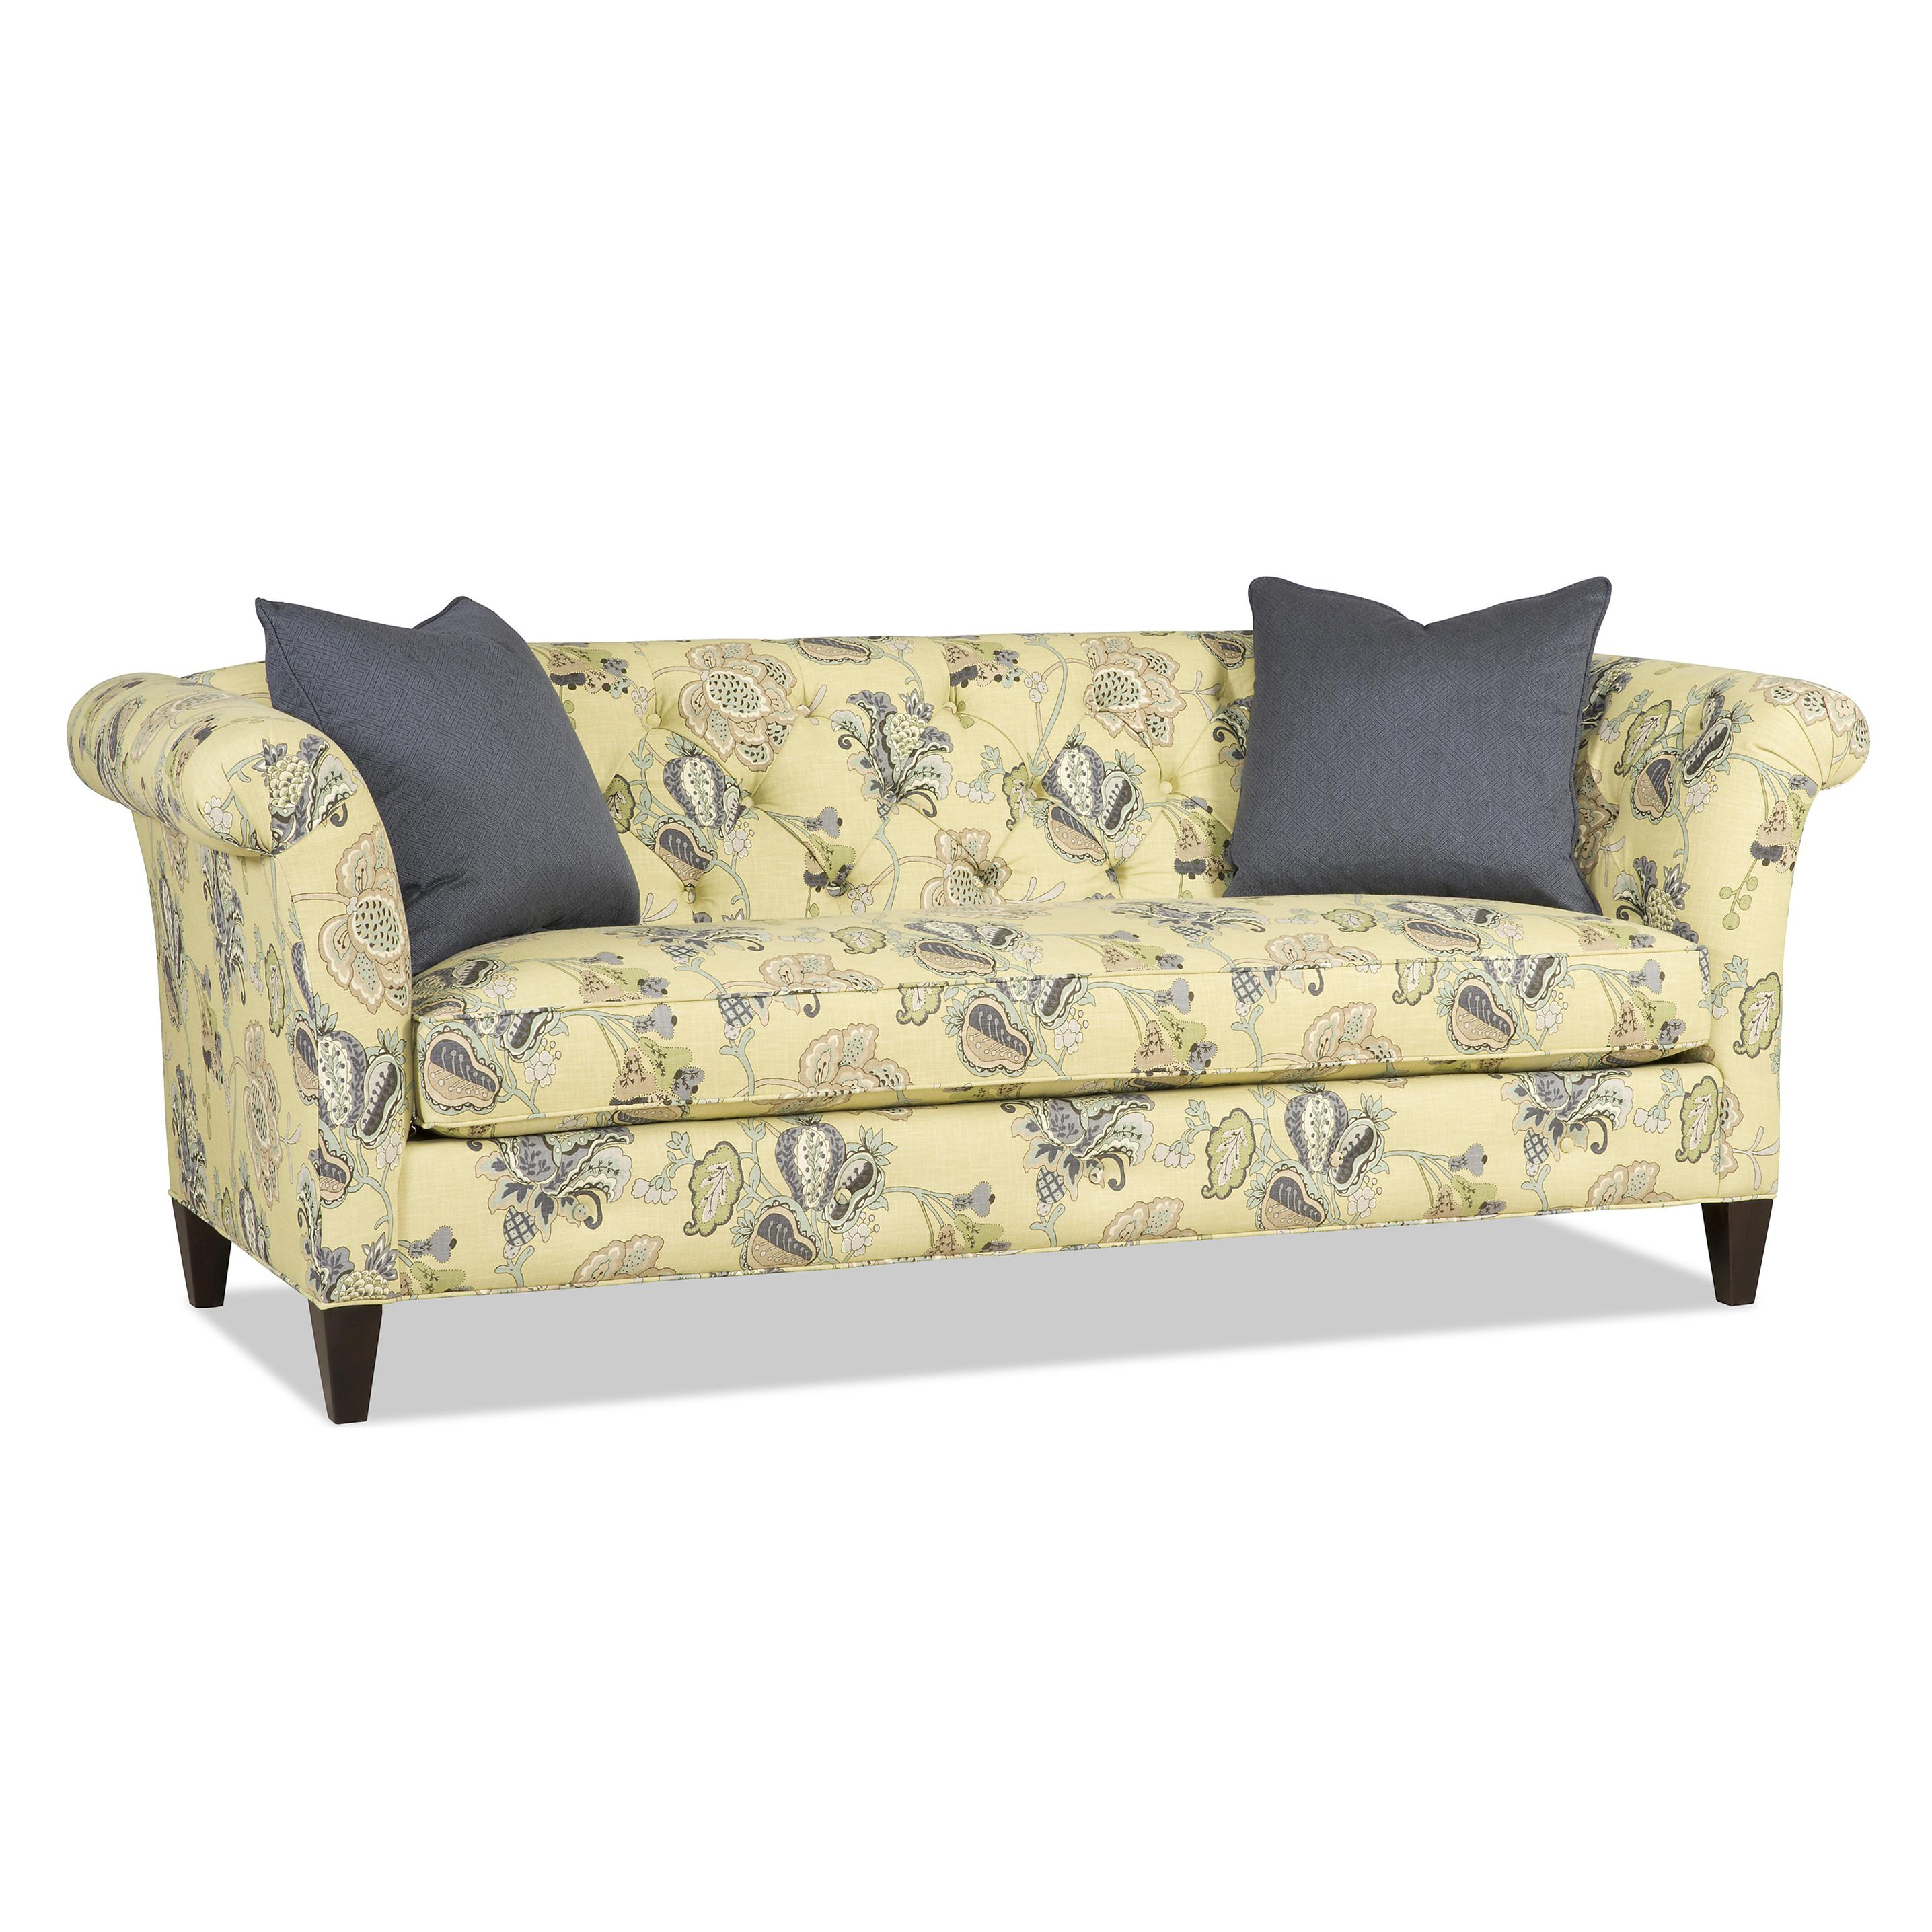 Astrid Traditional Bench Sofa by Sam Moore at Alison Craig Home Furnishings